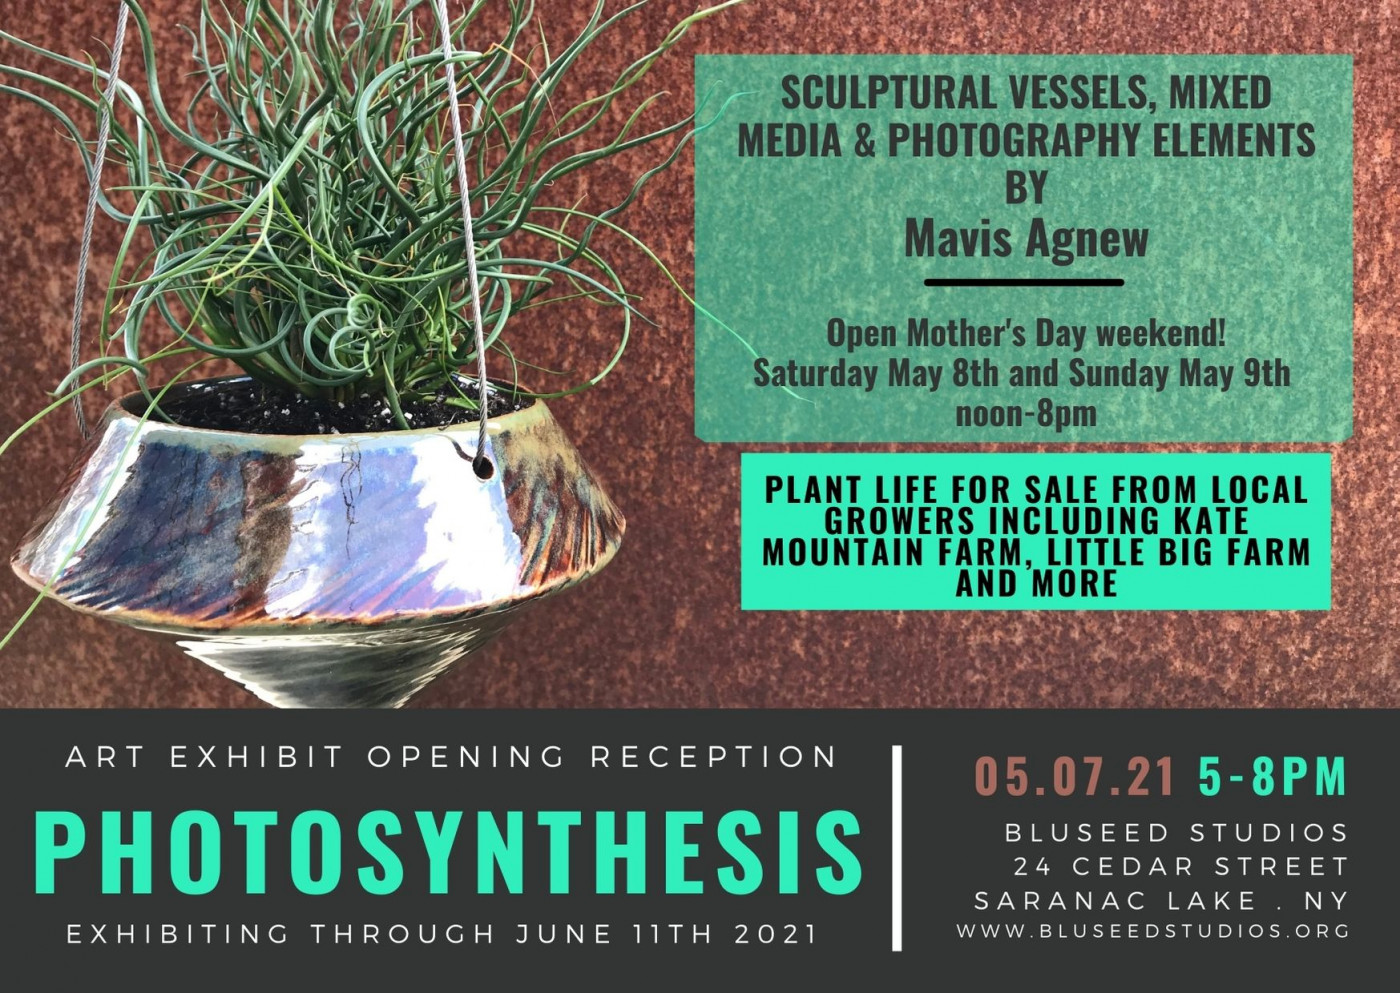 Photosynthesis by Mavis Agnew